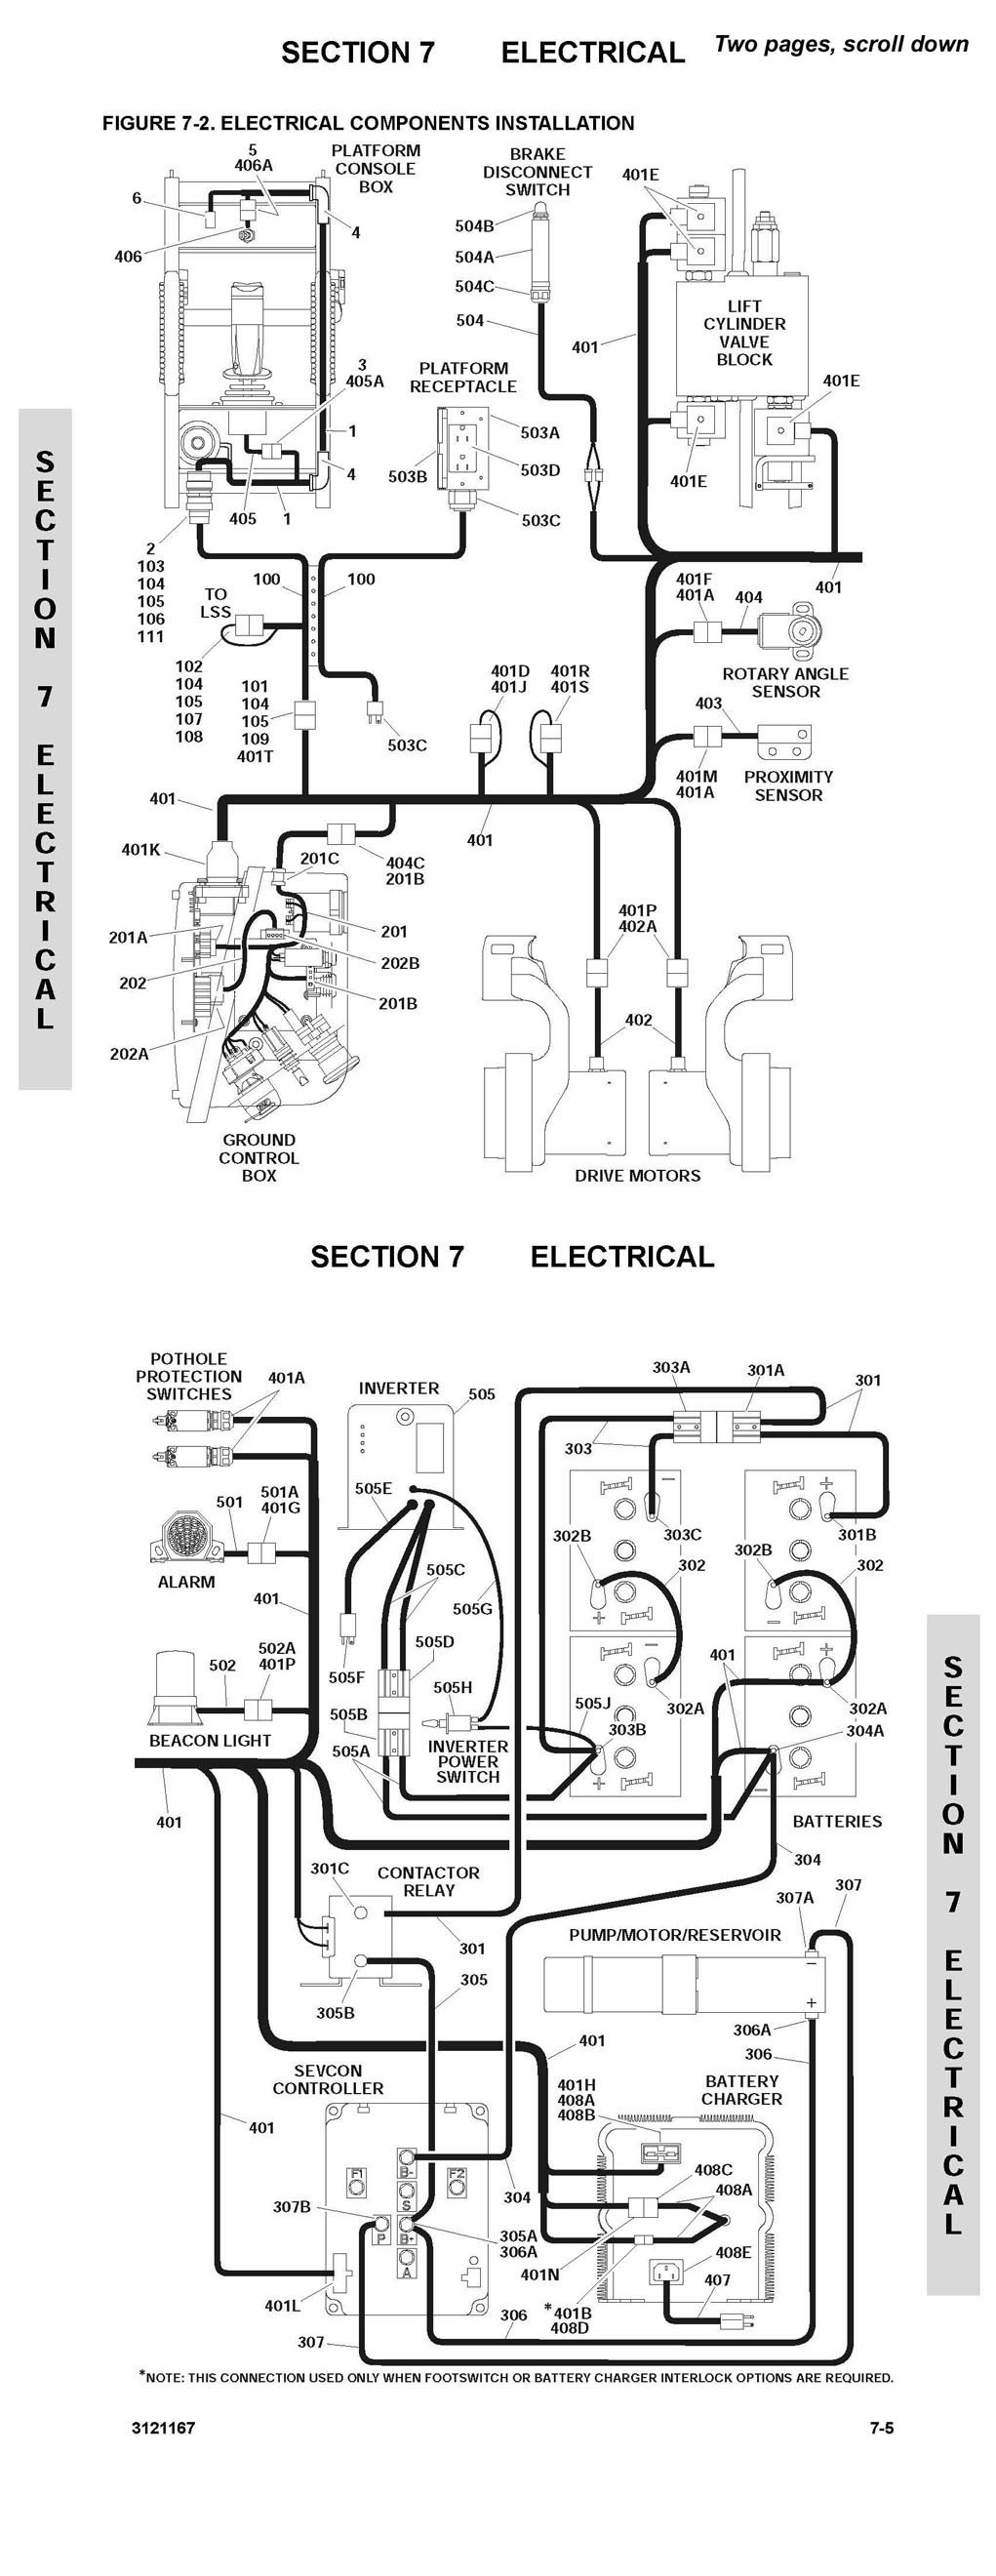 hight resolution of elevator wiring diagram pdf sampleelevator wiring diagram pdf elevator wiring diagram free collection upright scissor lift